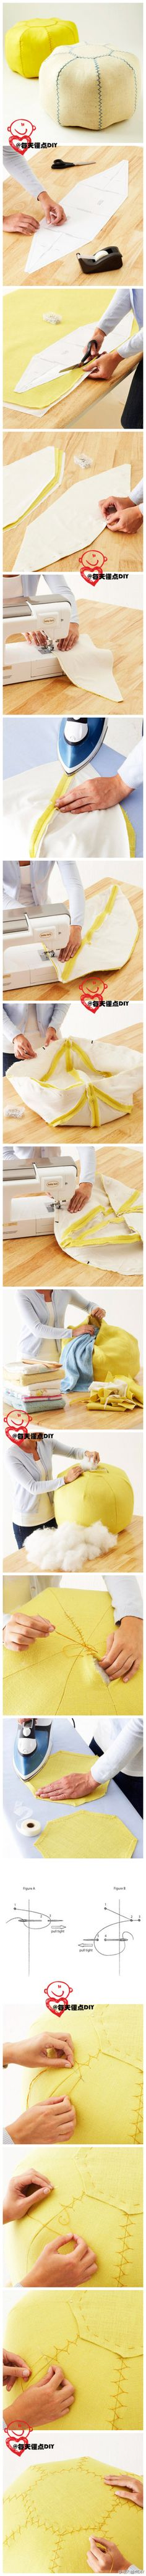 How to: pouf! I have a serious jonesing for a pouf! Sewing Tutorials, Sewing Hacks, Sewing Patterns, Diy Projects To Try, Craft Projects, Sewing Projects, Fabric Crafts, Sewing Crafts, Diy Crafts